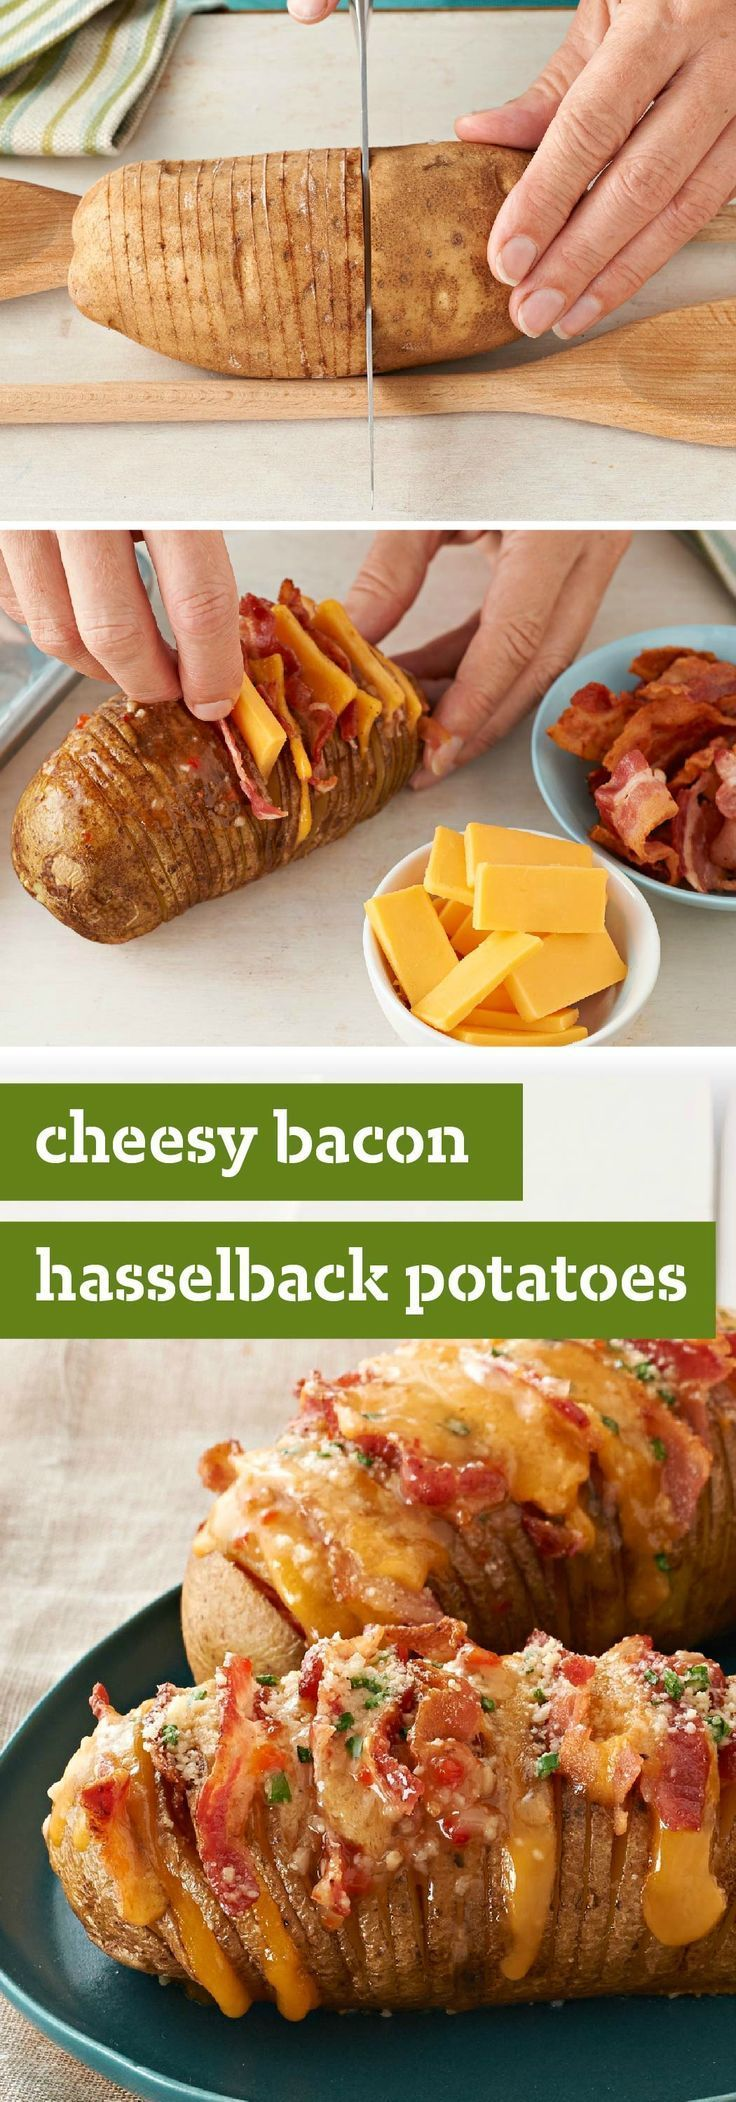 Cheesy Bacon Hasselback Potatoes – Hasselback potatoes always look great on a dinner plate. This cheesy version, made with OSCAR MAYER bacon, cheddar and fresh chives, is sure to be a new favorite during all your spring and summer entertaining.